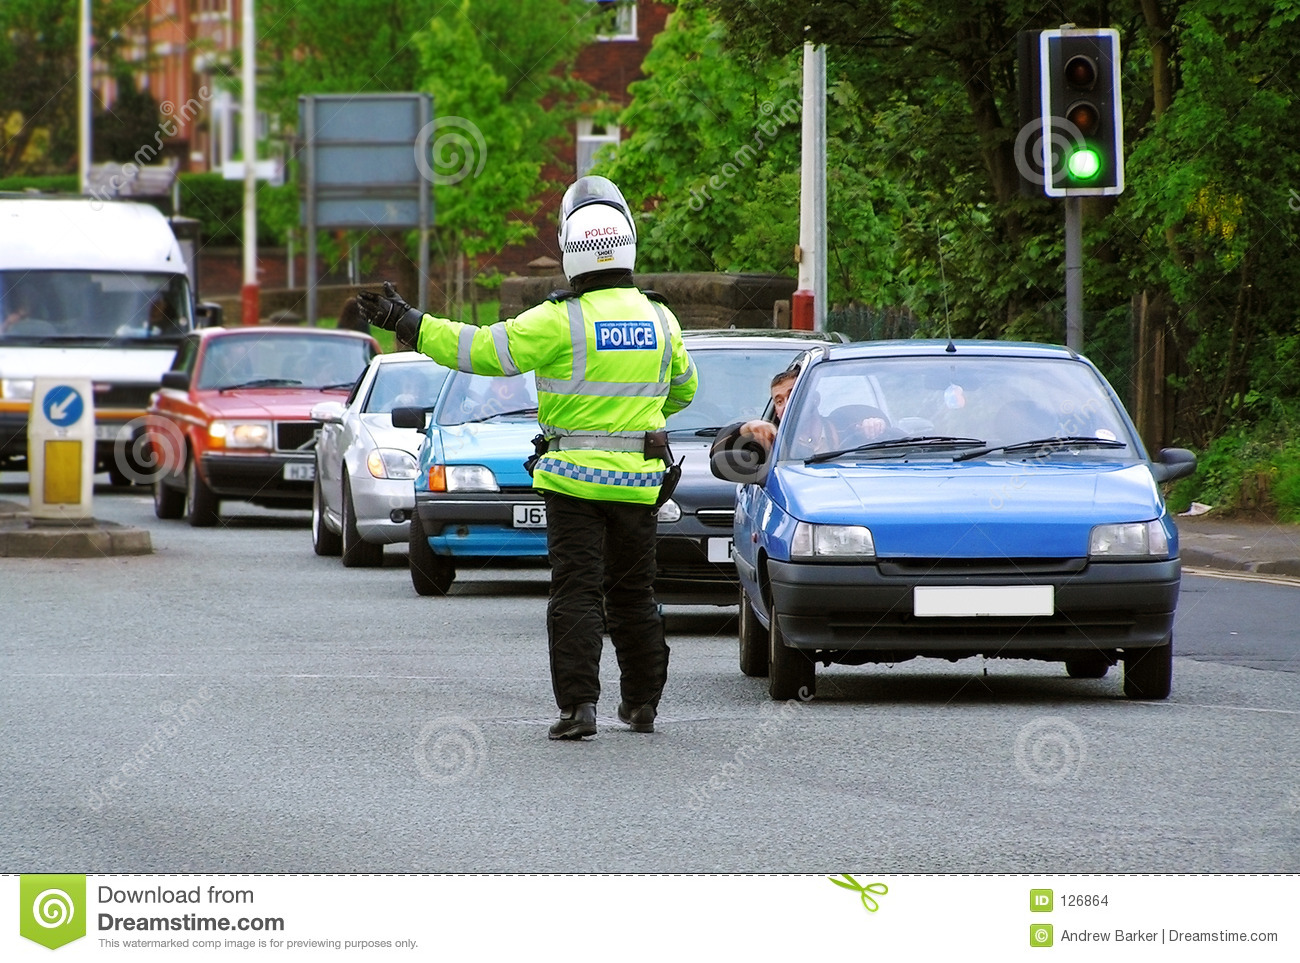 http://thumbs.dreamstime.com/z/traffic-police-126864.jpg